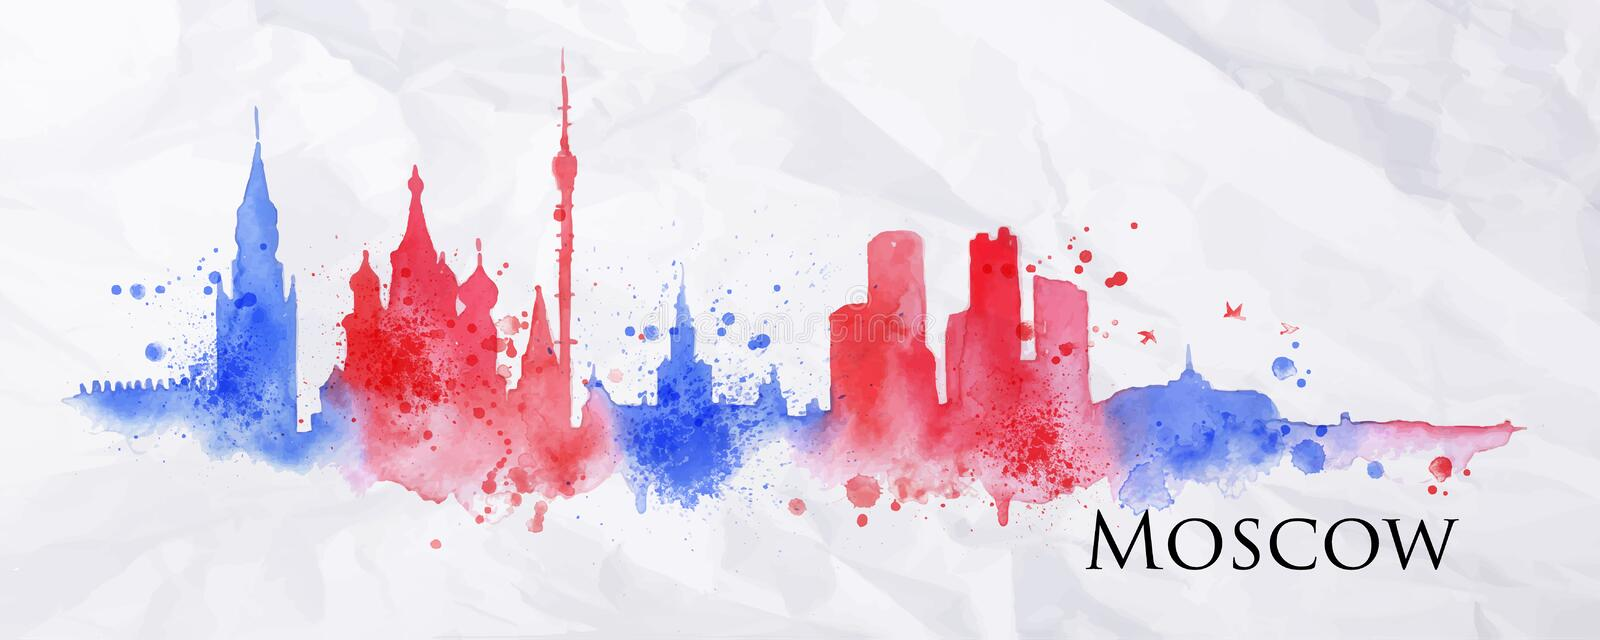 Silhouette watercolor Moscow vector illustration